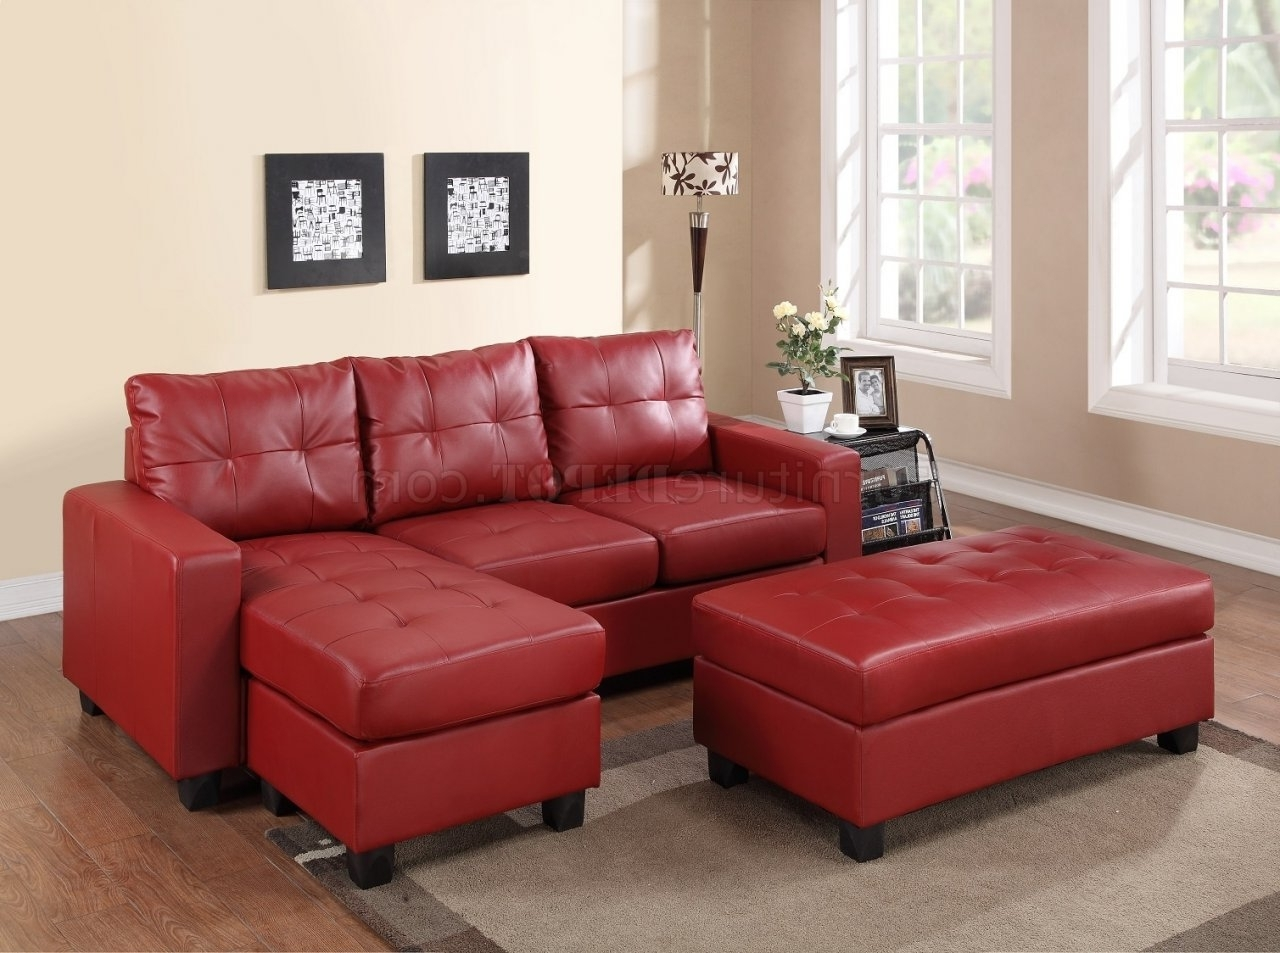 Most Recent Red Sectional Sofas Inside 2511 Sectional Sofa Set In Red Bonded Leather Match Pu (View 11 of 20)